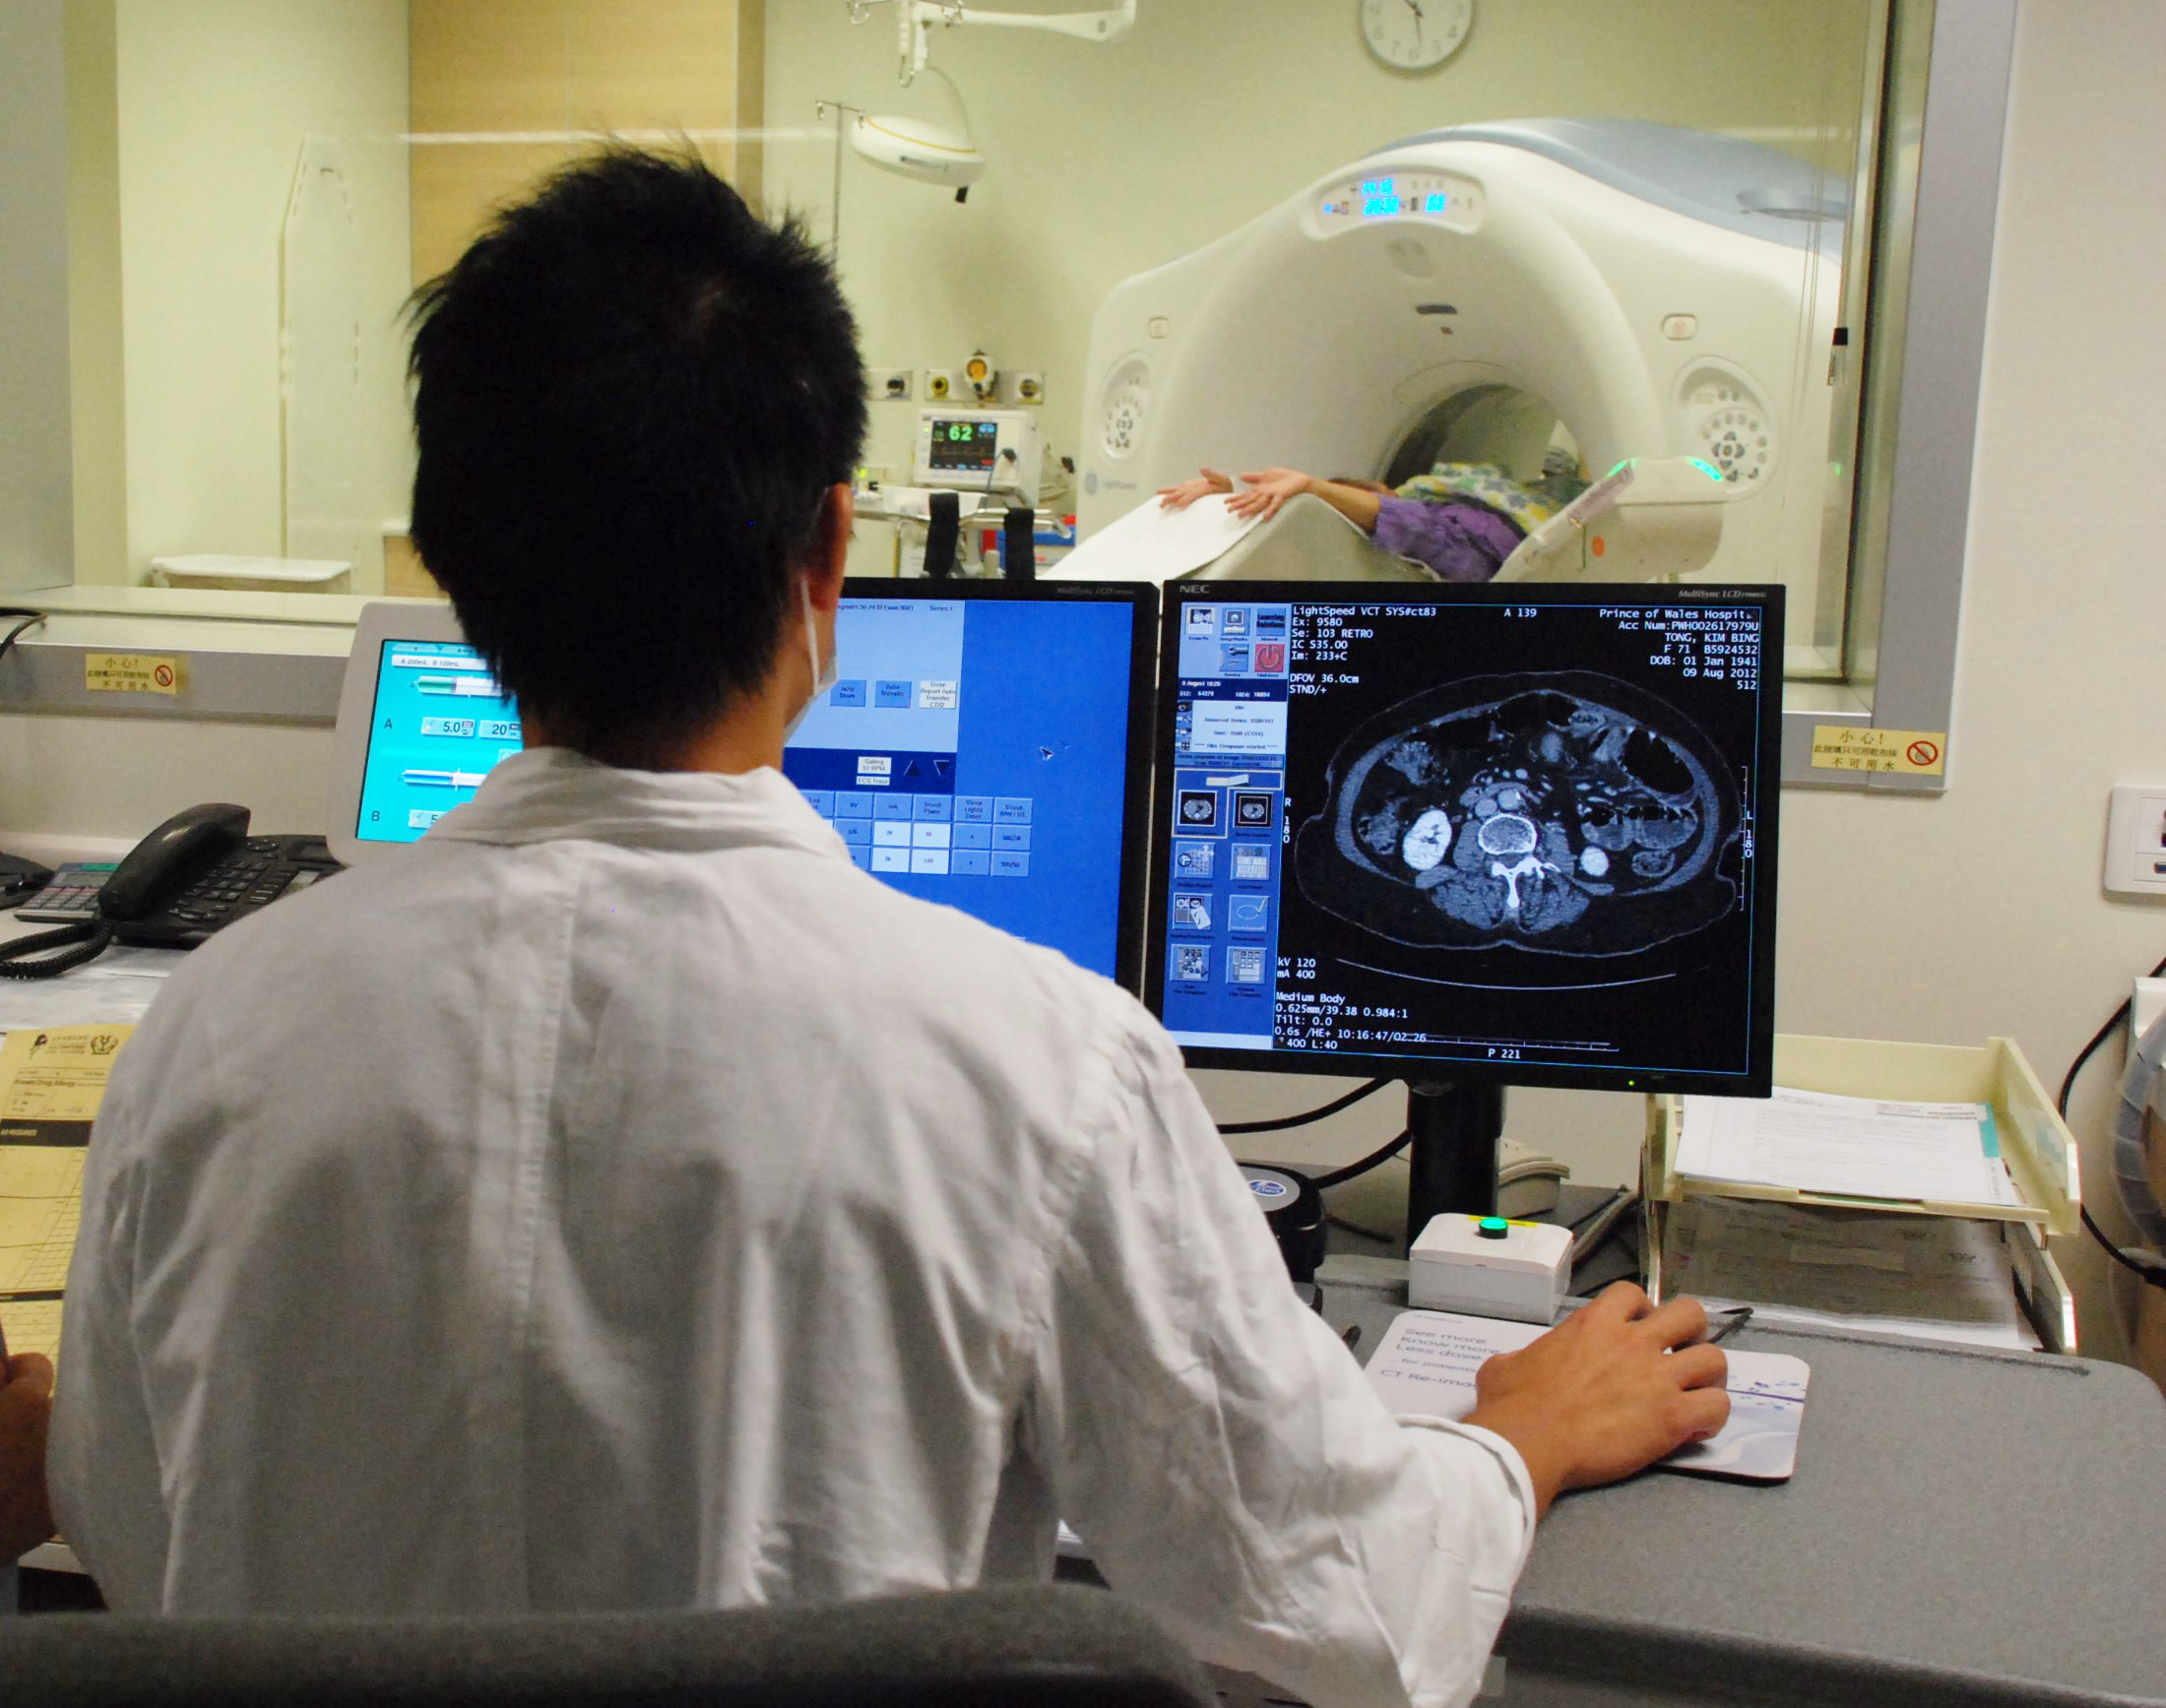 Imaging and Interventional Radiology